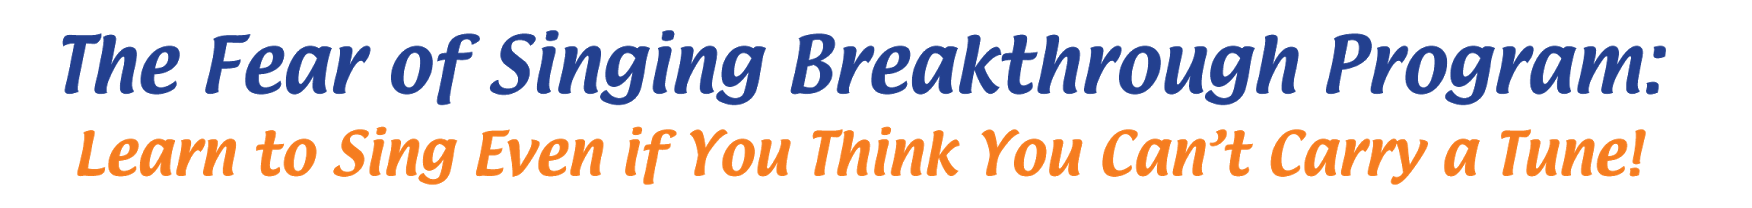 The Fear of Singing Breakthrough Program Logo